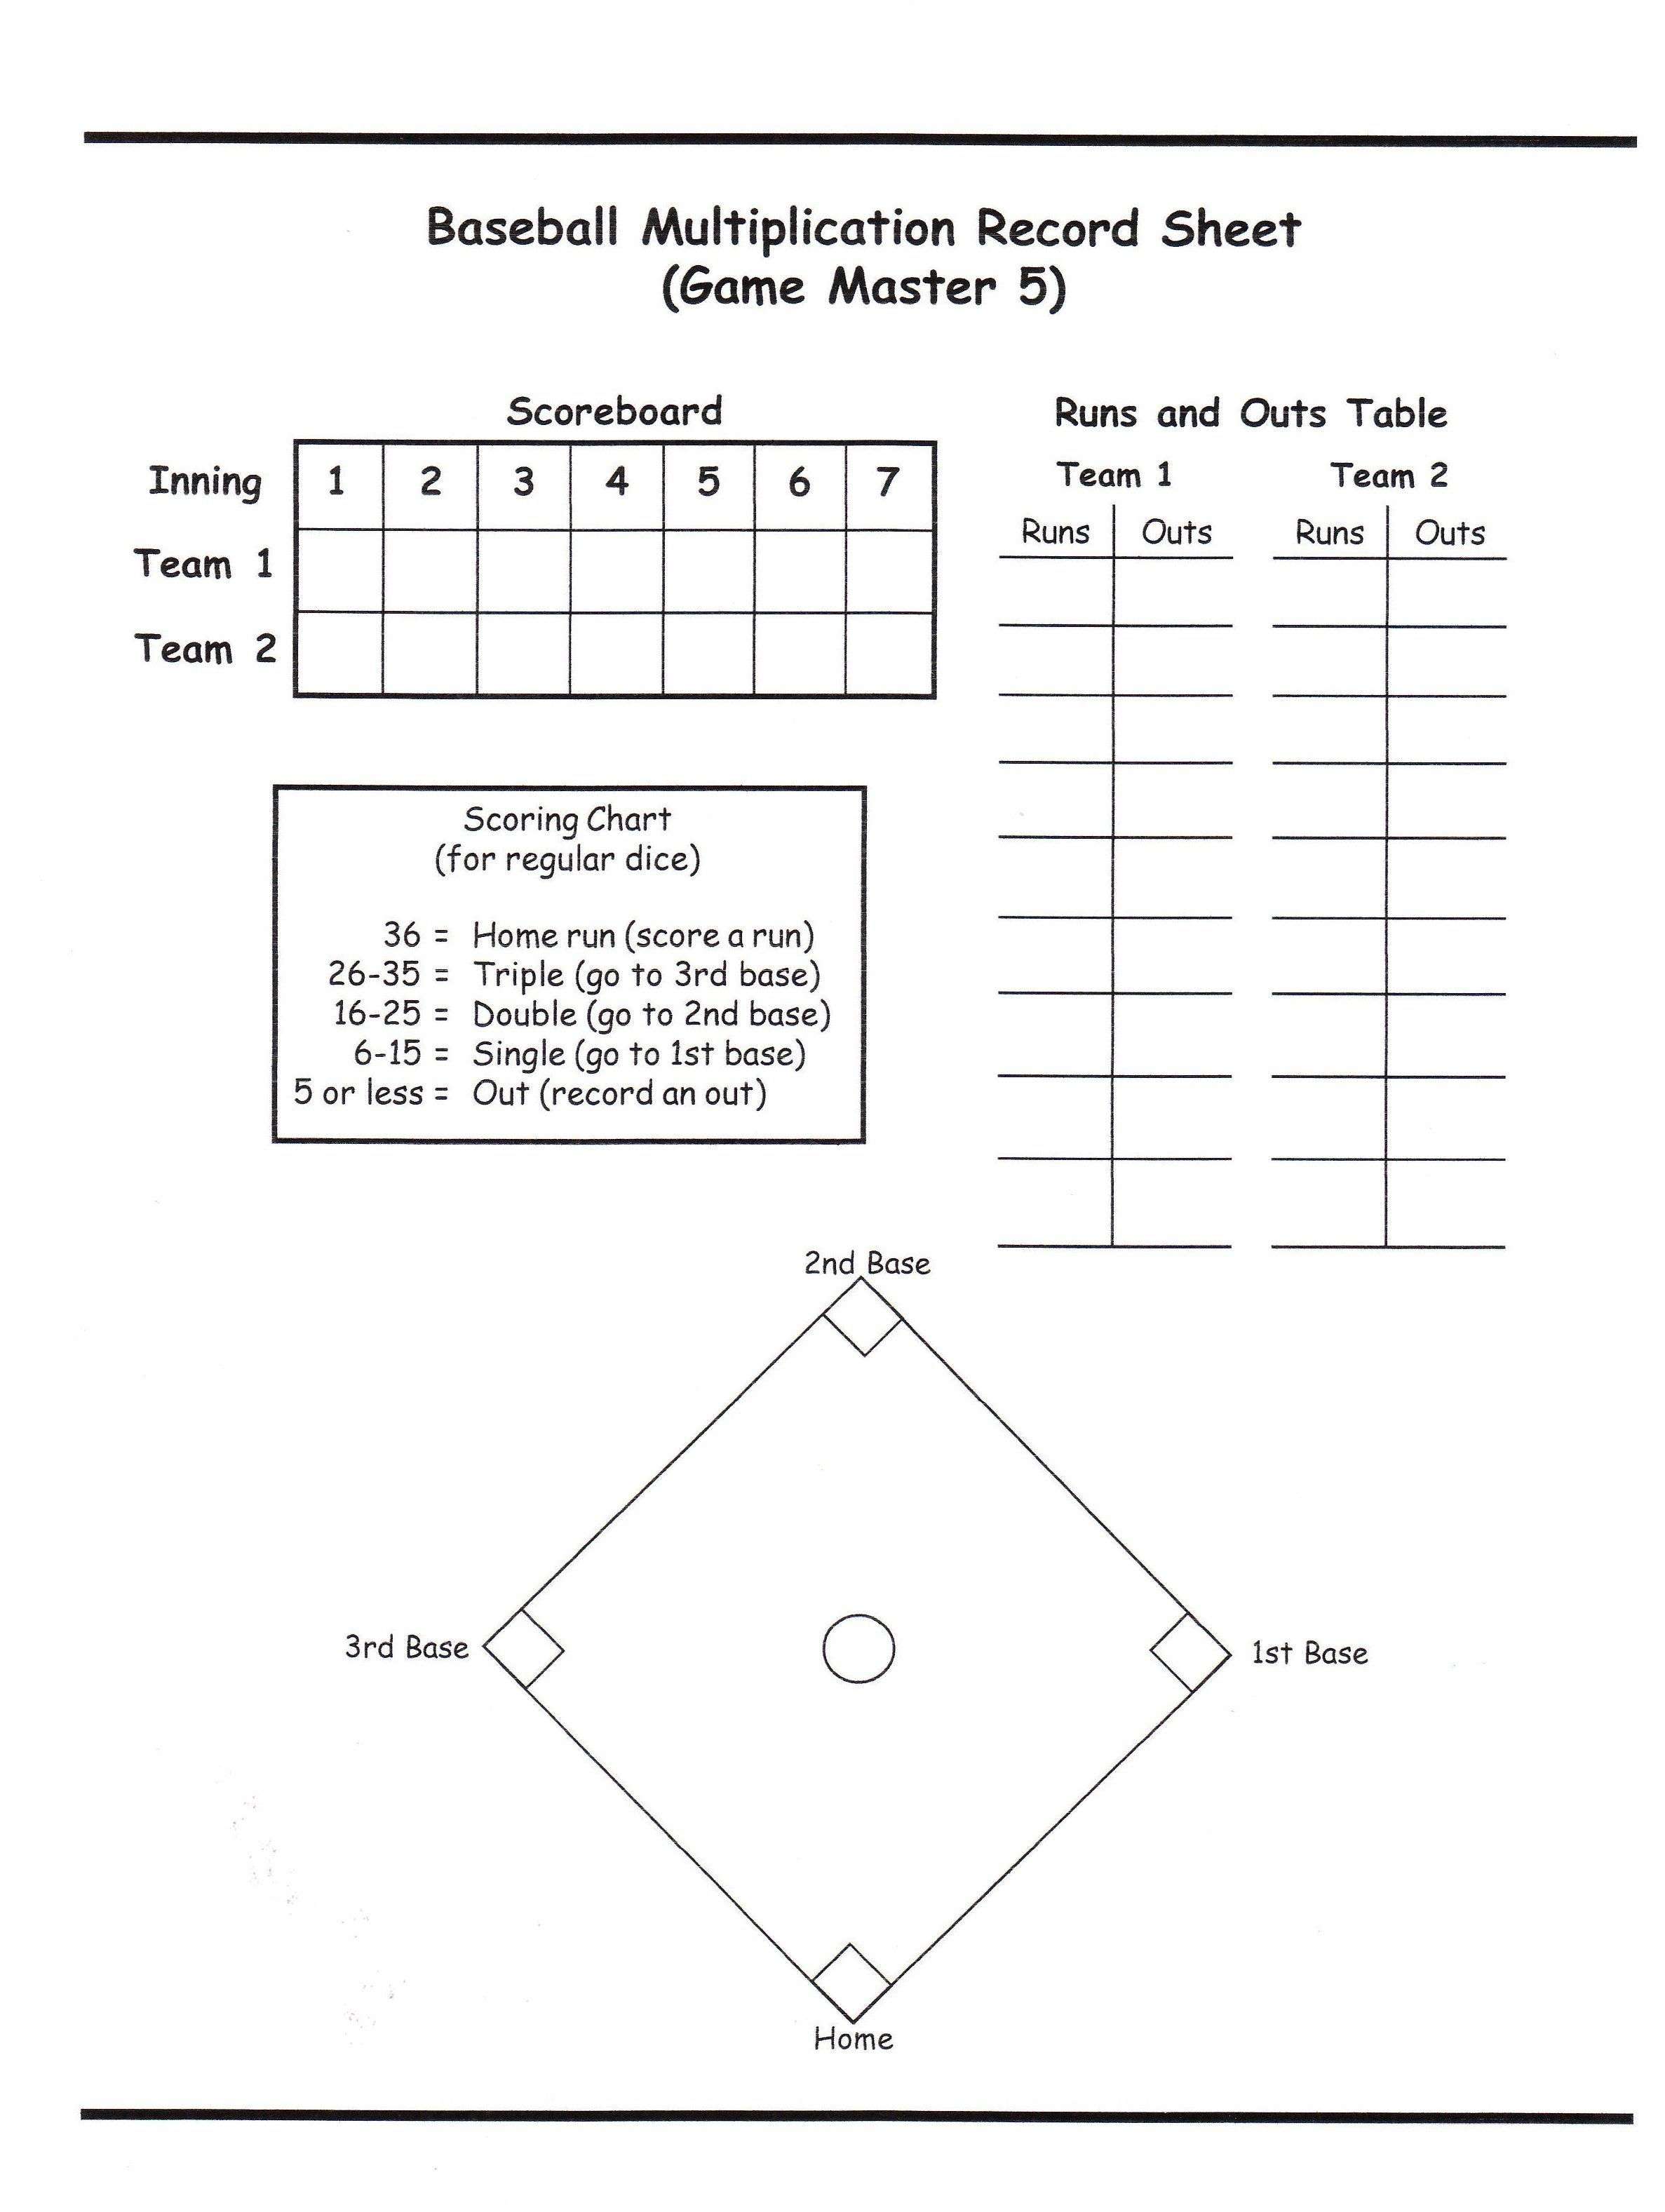 Baseball Math Worksheets Worksheets Are Obviously The Backbone To Pupils Gaining Kno In 2021 Math Worksheets Free Printable Math Worksheets Printable Math Worksheets [ 3154 x 2374 Pixel ]